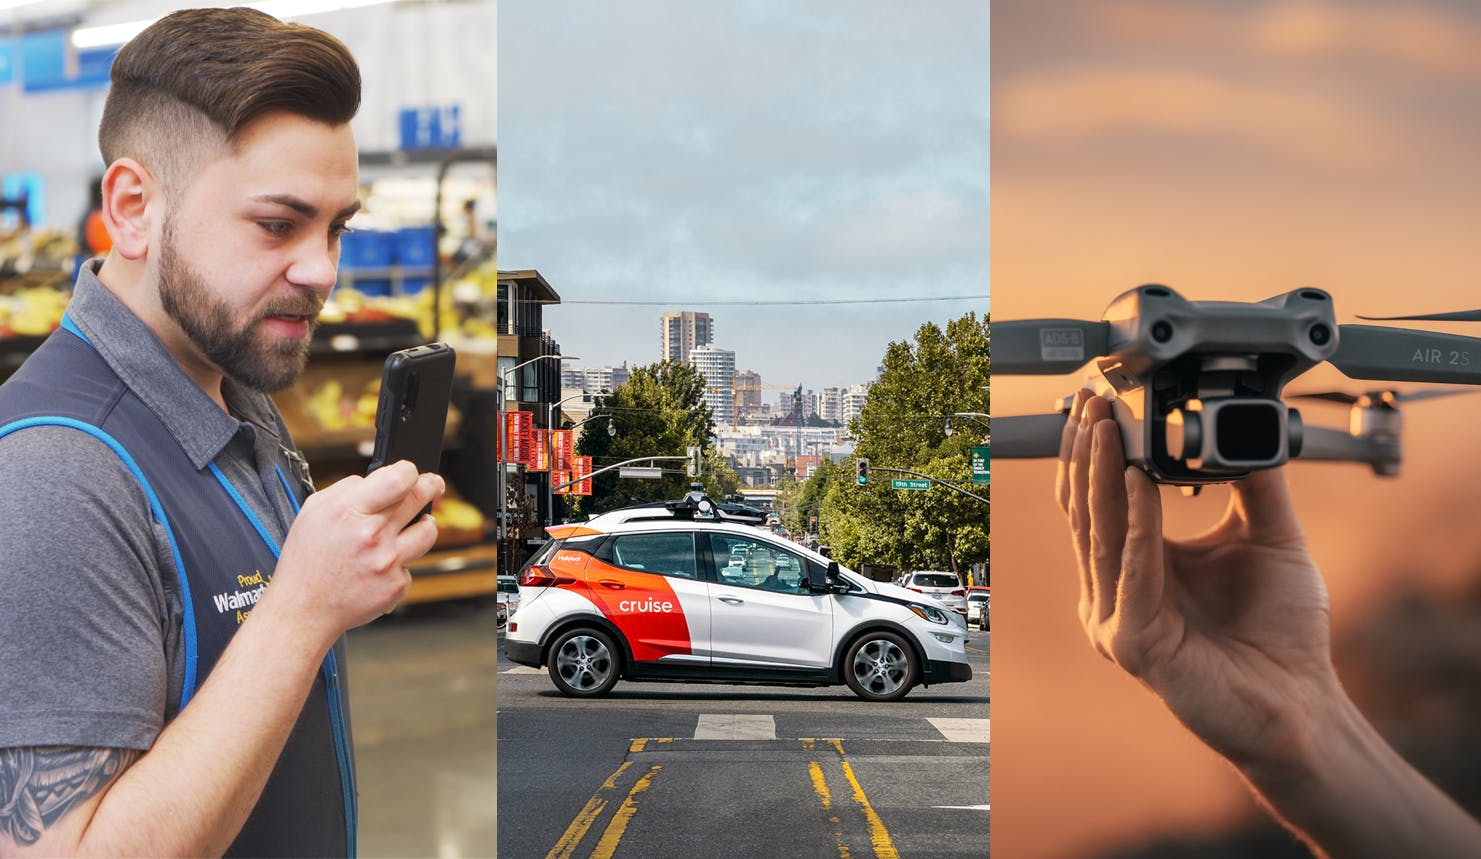 Walmart gives employees new Samsung phones—Cruise gets the green light for driverless rides in California—Pentagon clears DJI drones